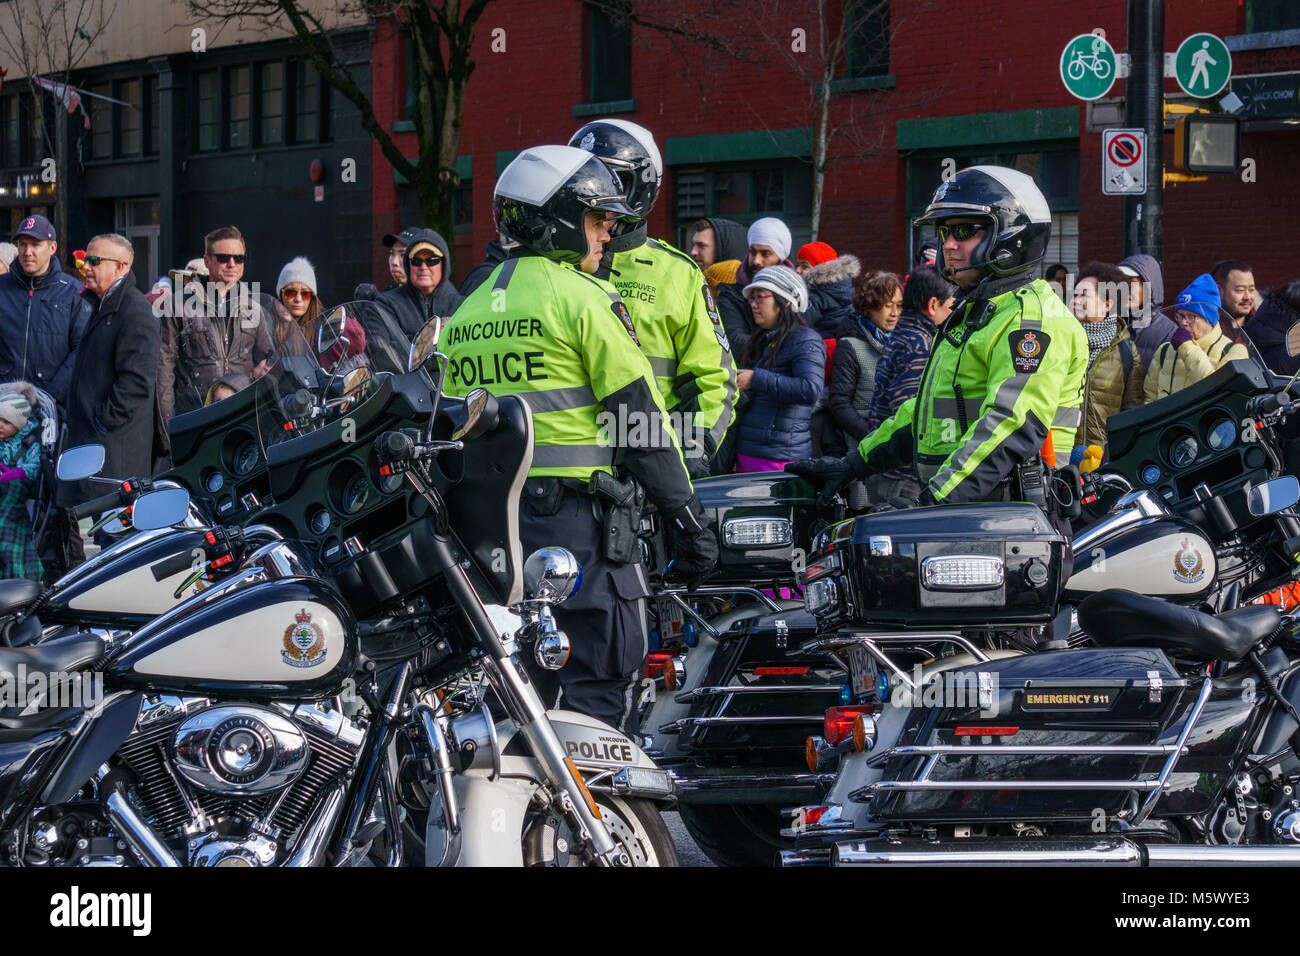 Vancouver Police Department Stock Photos Accessories Vpd 3 Canada February 18 2018 Motocycle Officers At Chinese